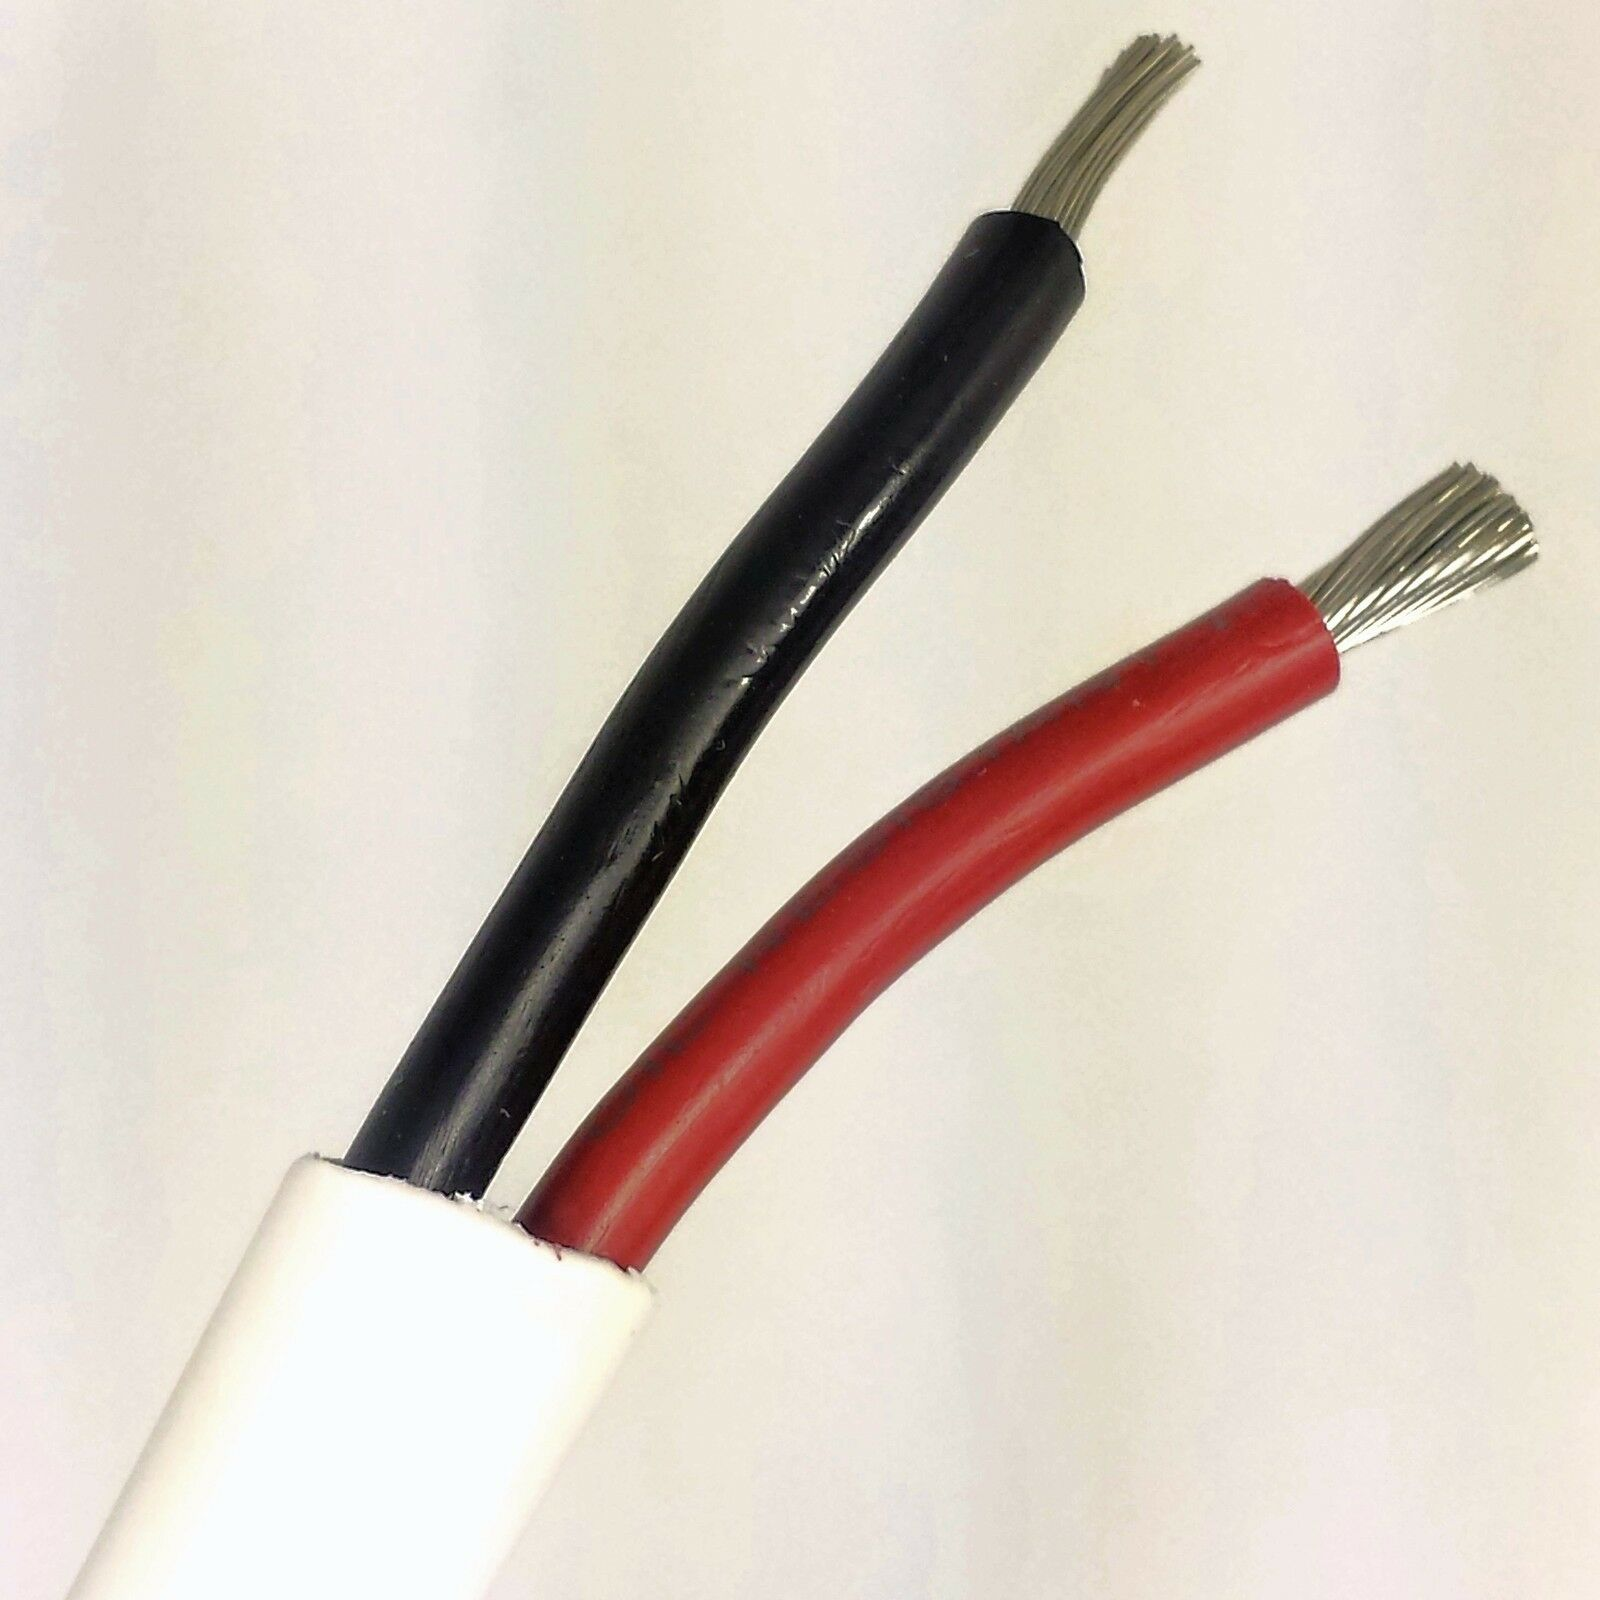 14/2 AWG Gauge Marine Grade Wire, Boat Cable, Tinned Copper, Flat ...